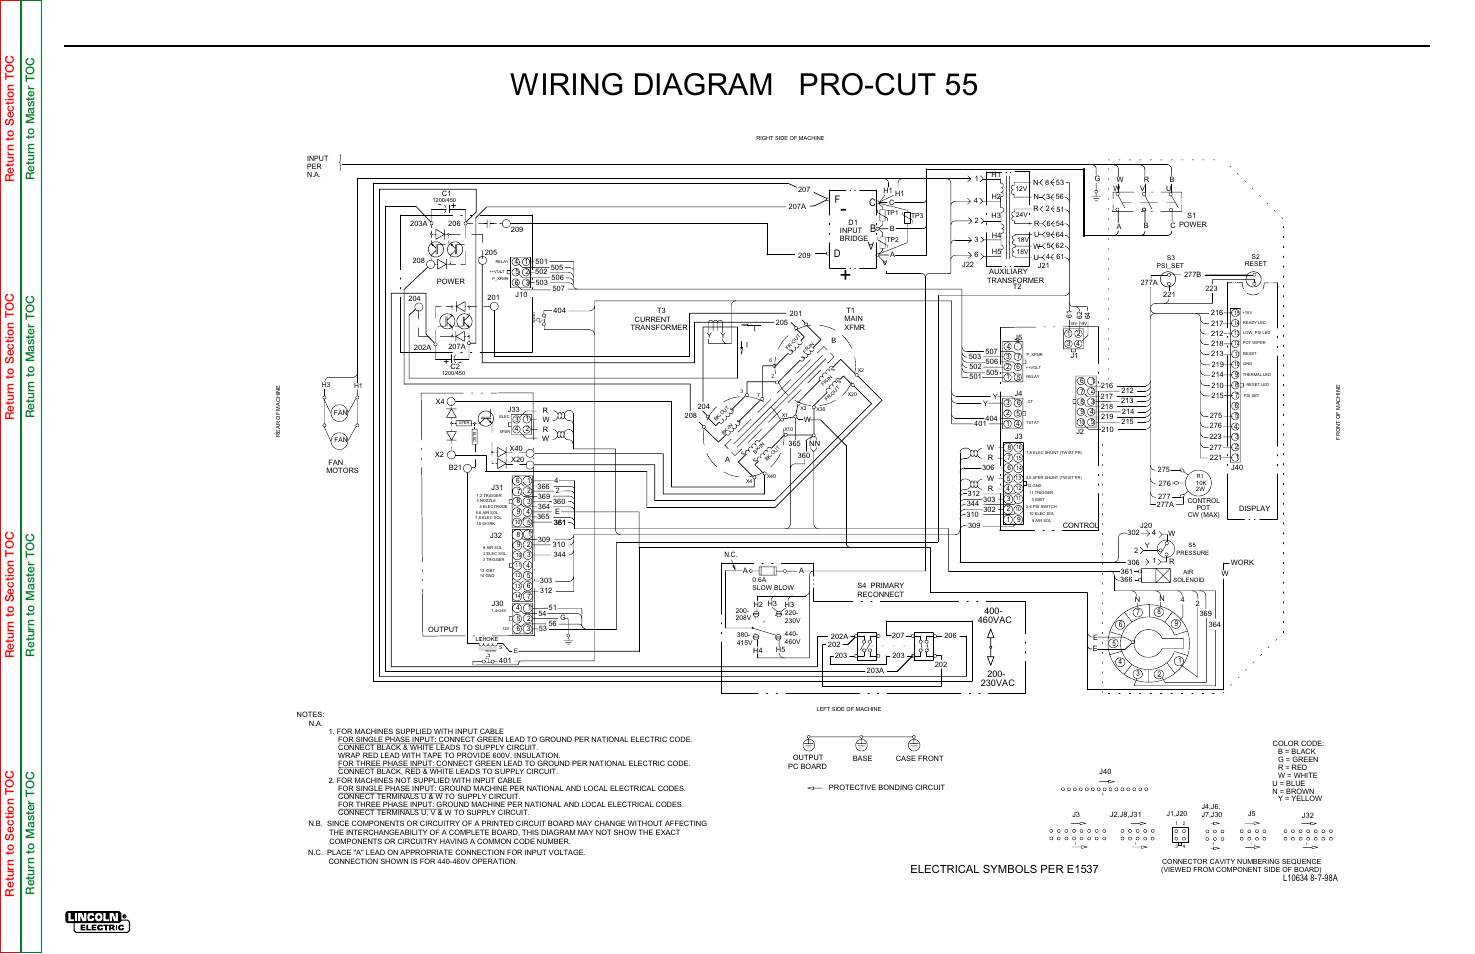 Astatic D104 Wiring Diagram from www.manualsdir.com